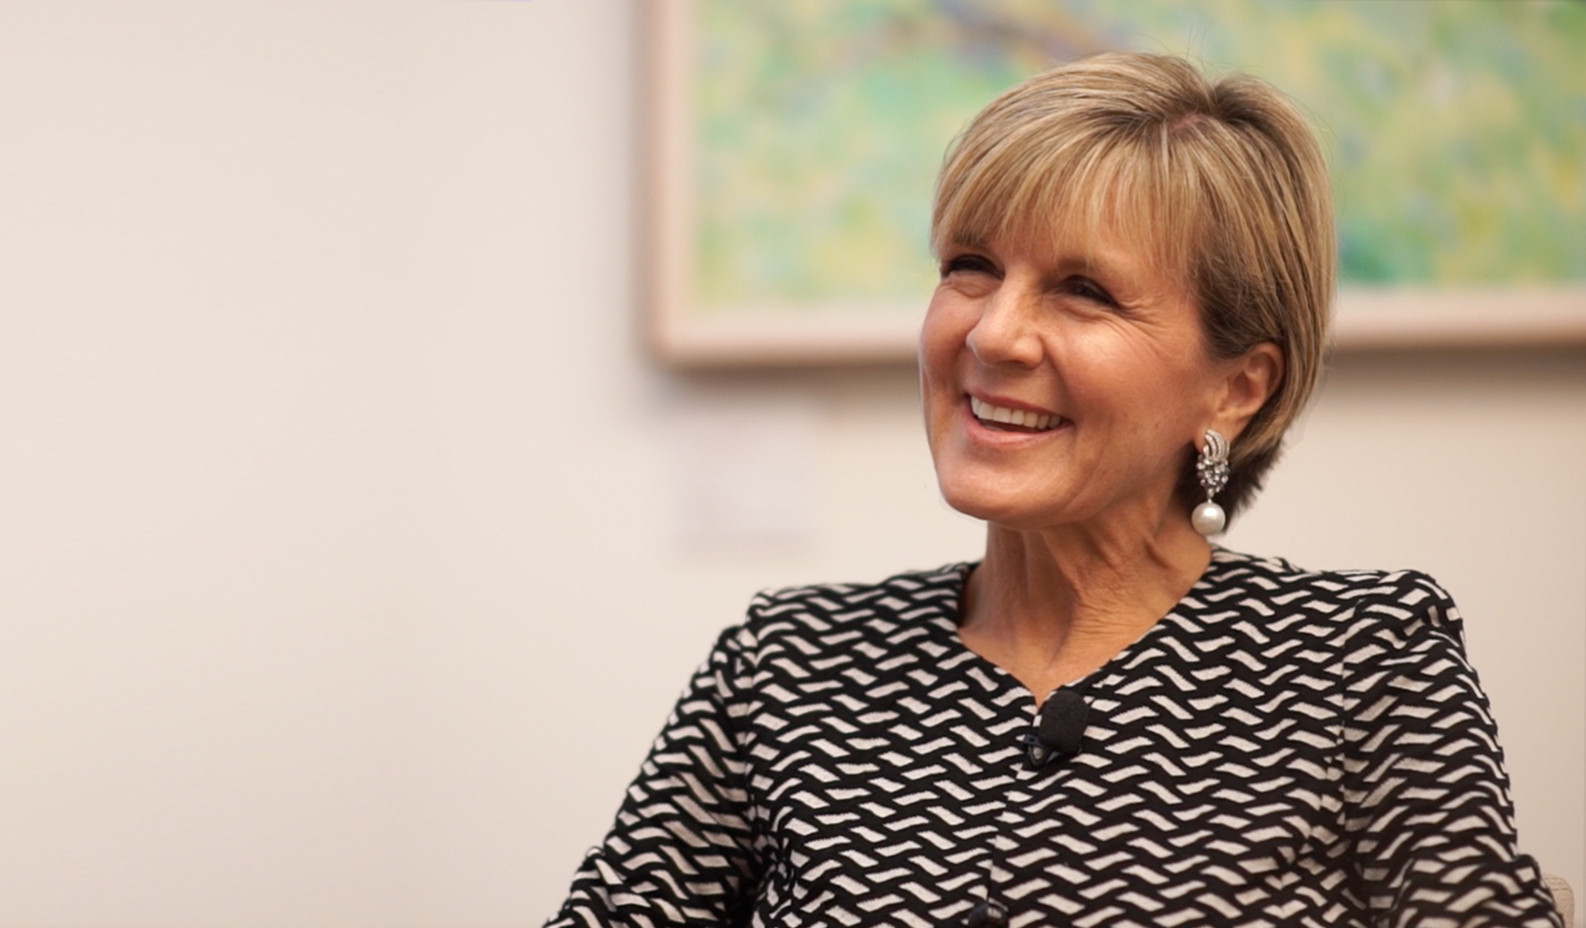 julie bishop - photo #17